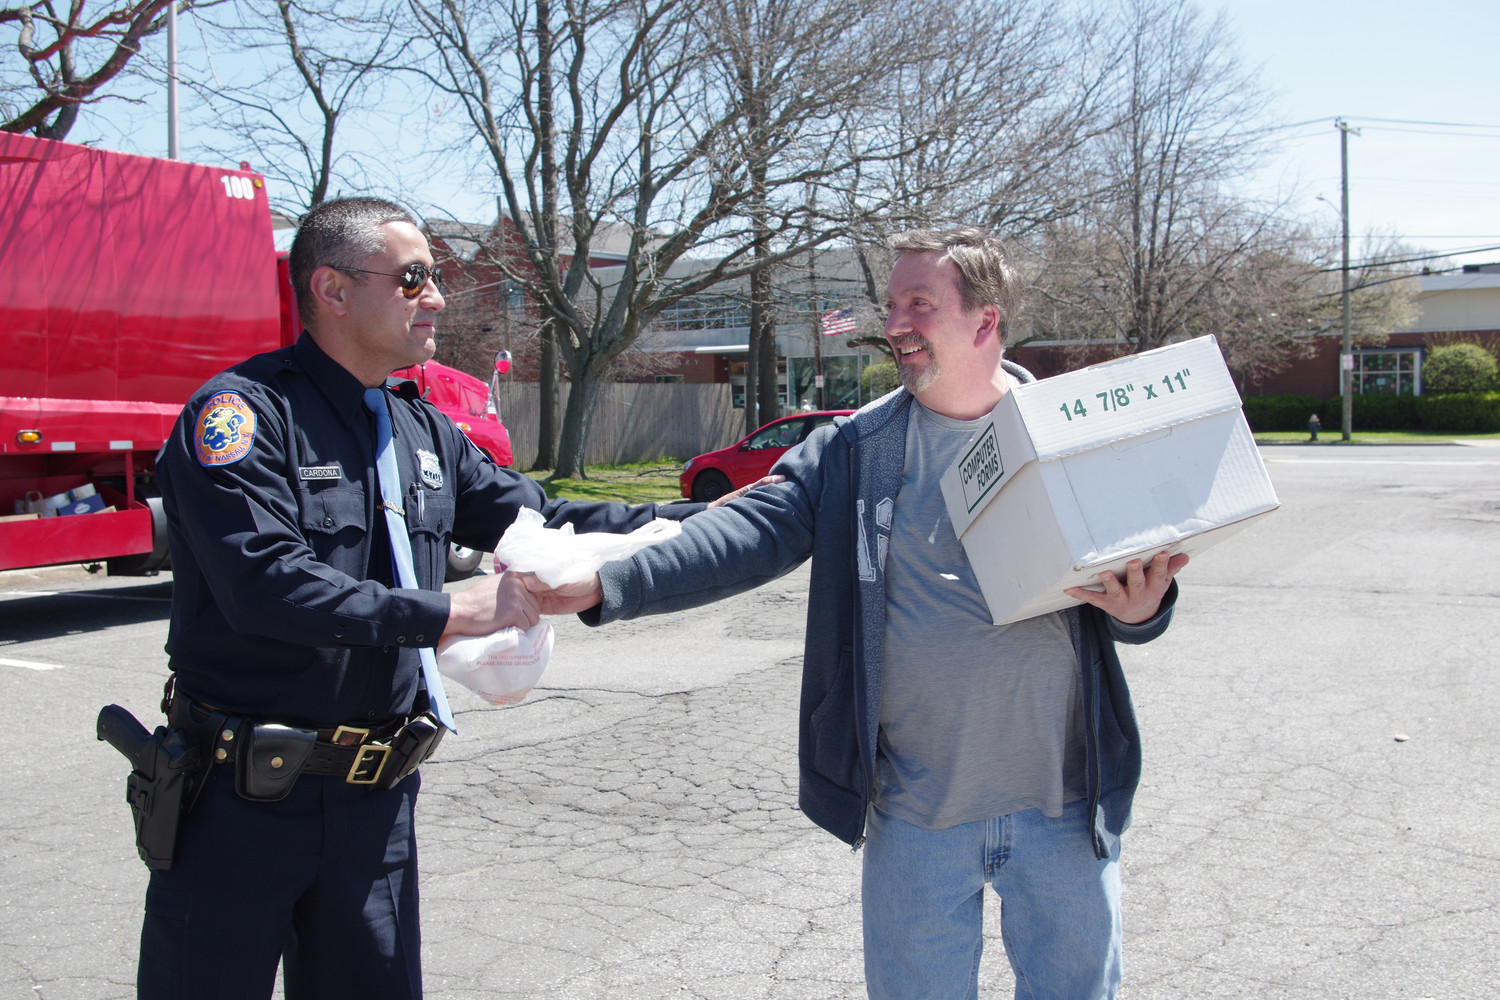 Nassau County police officer Jethrow cardona, left, collected medication waste from an Oceanside resident.